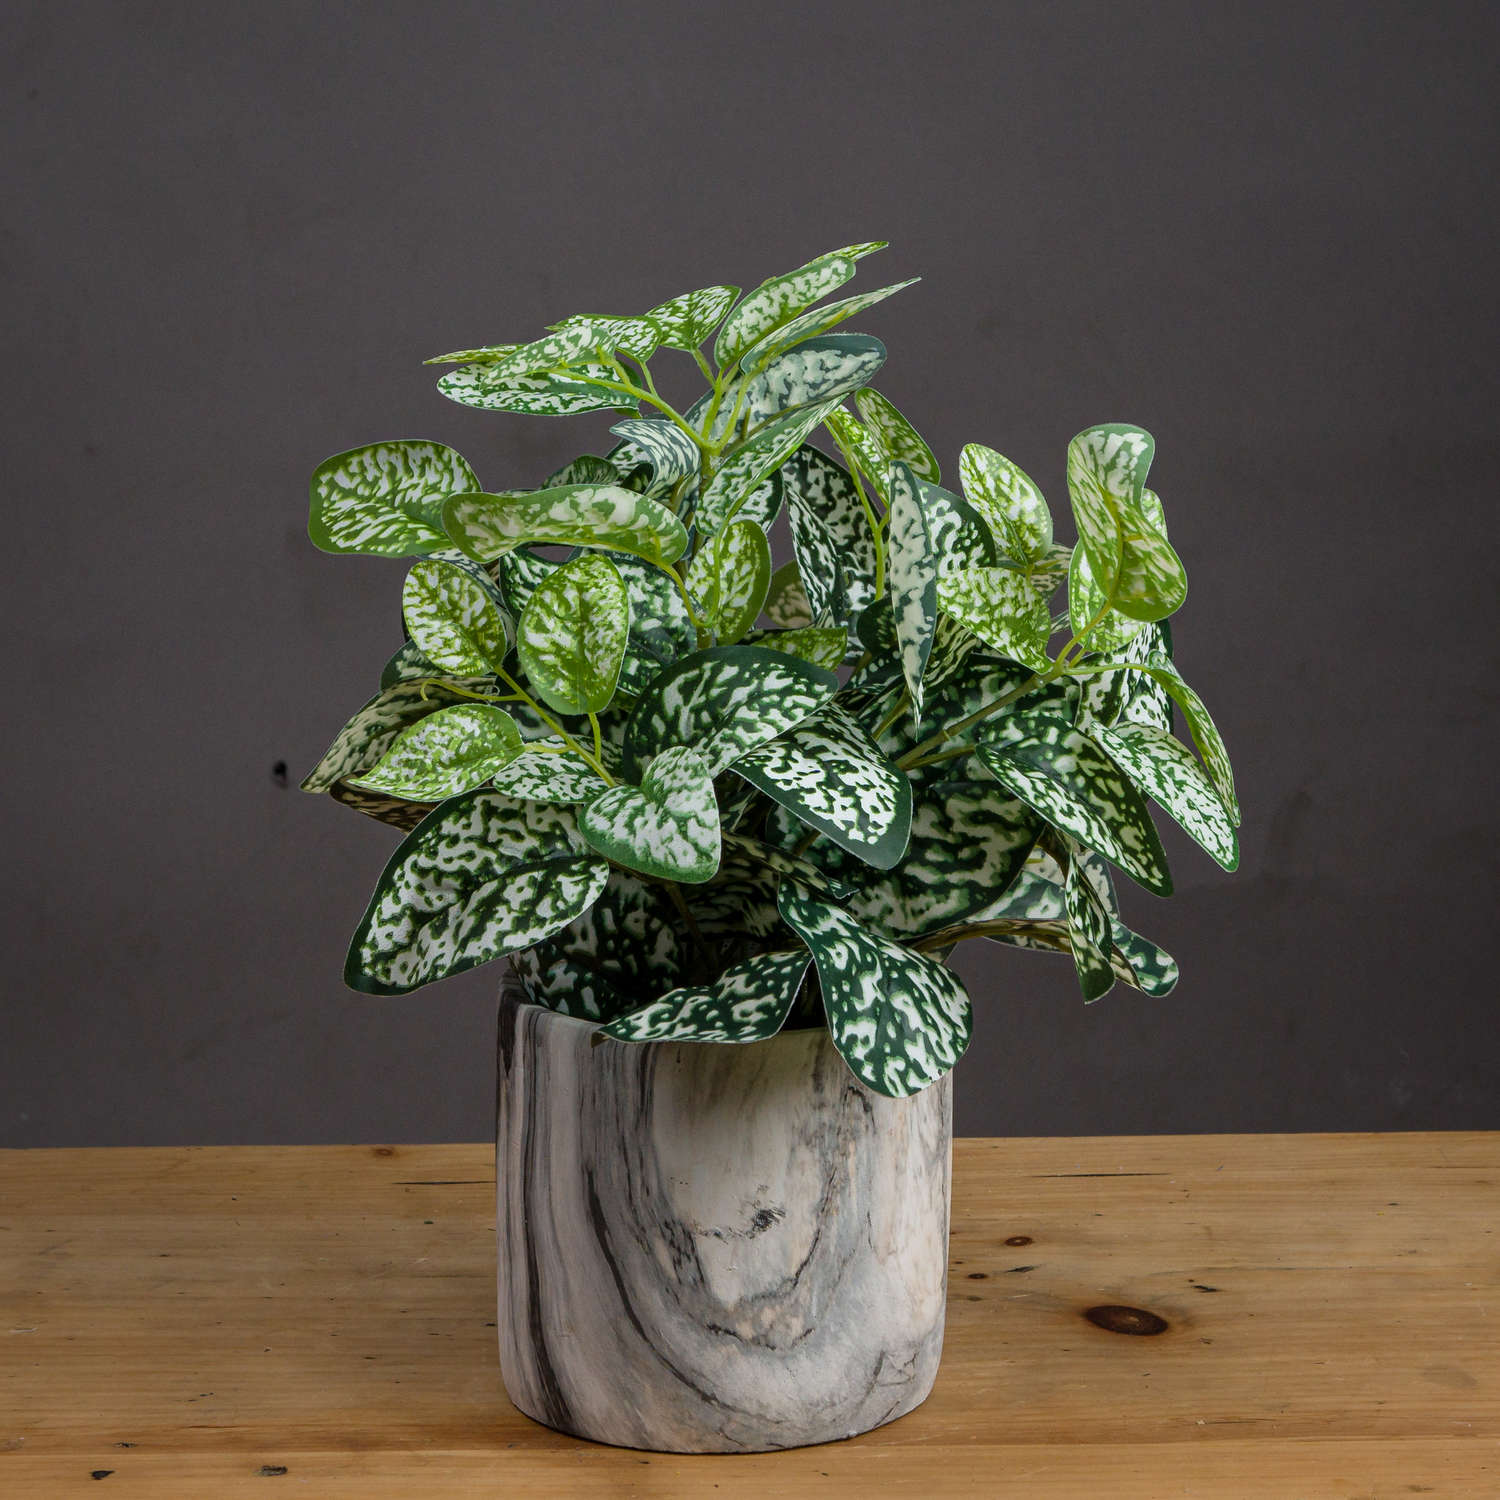 Variegated White And Green Nerve Plant